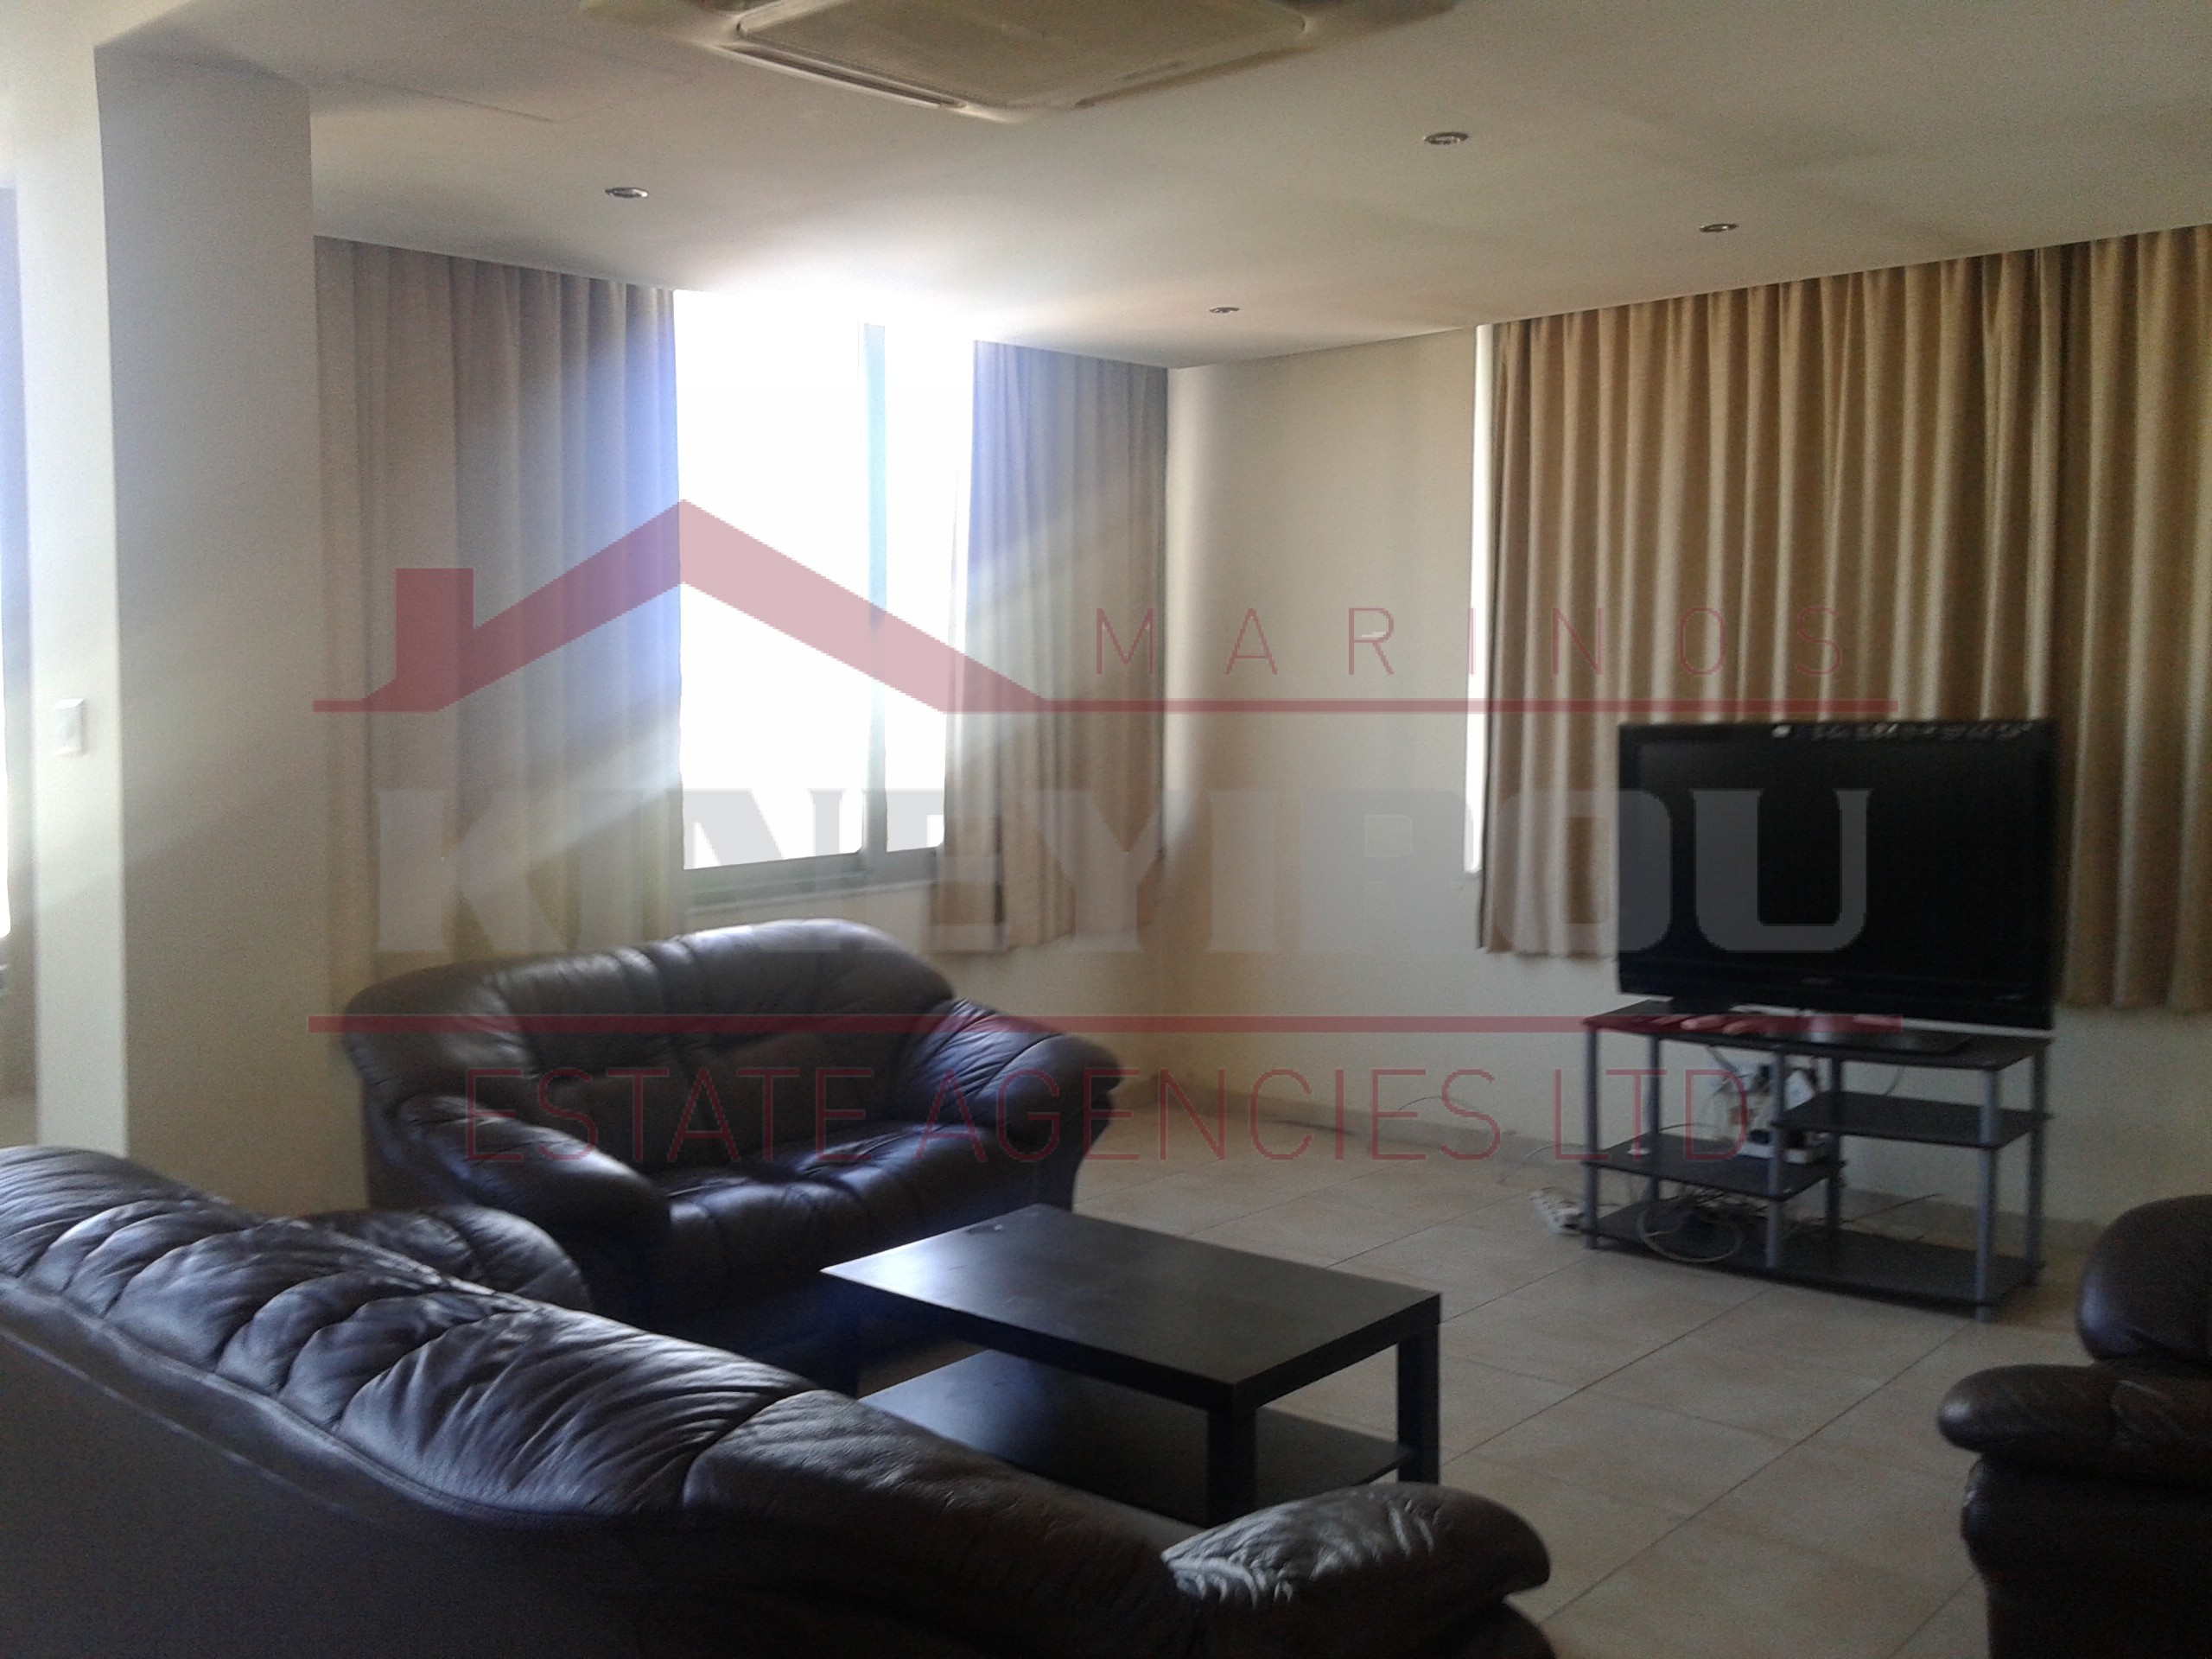 1 bedroom penthouse for rent in Larnaca , Cyprus